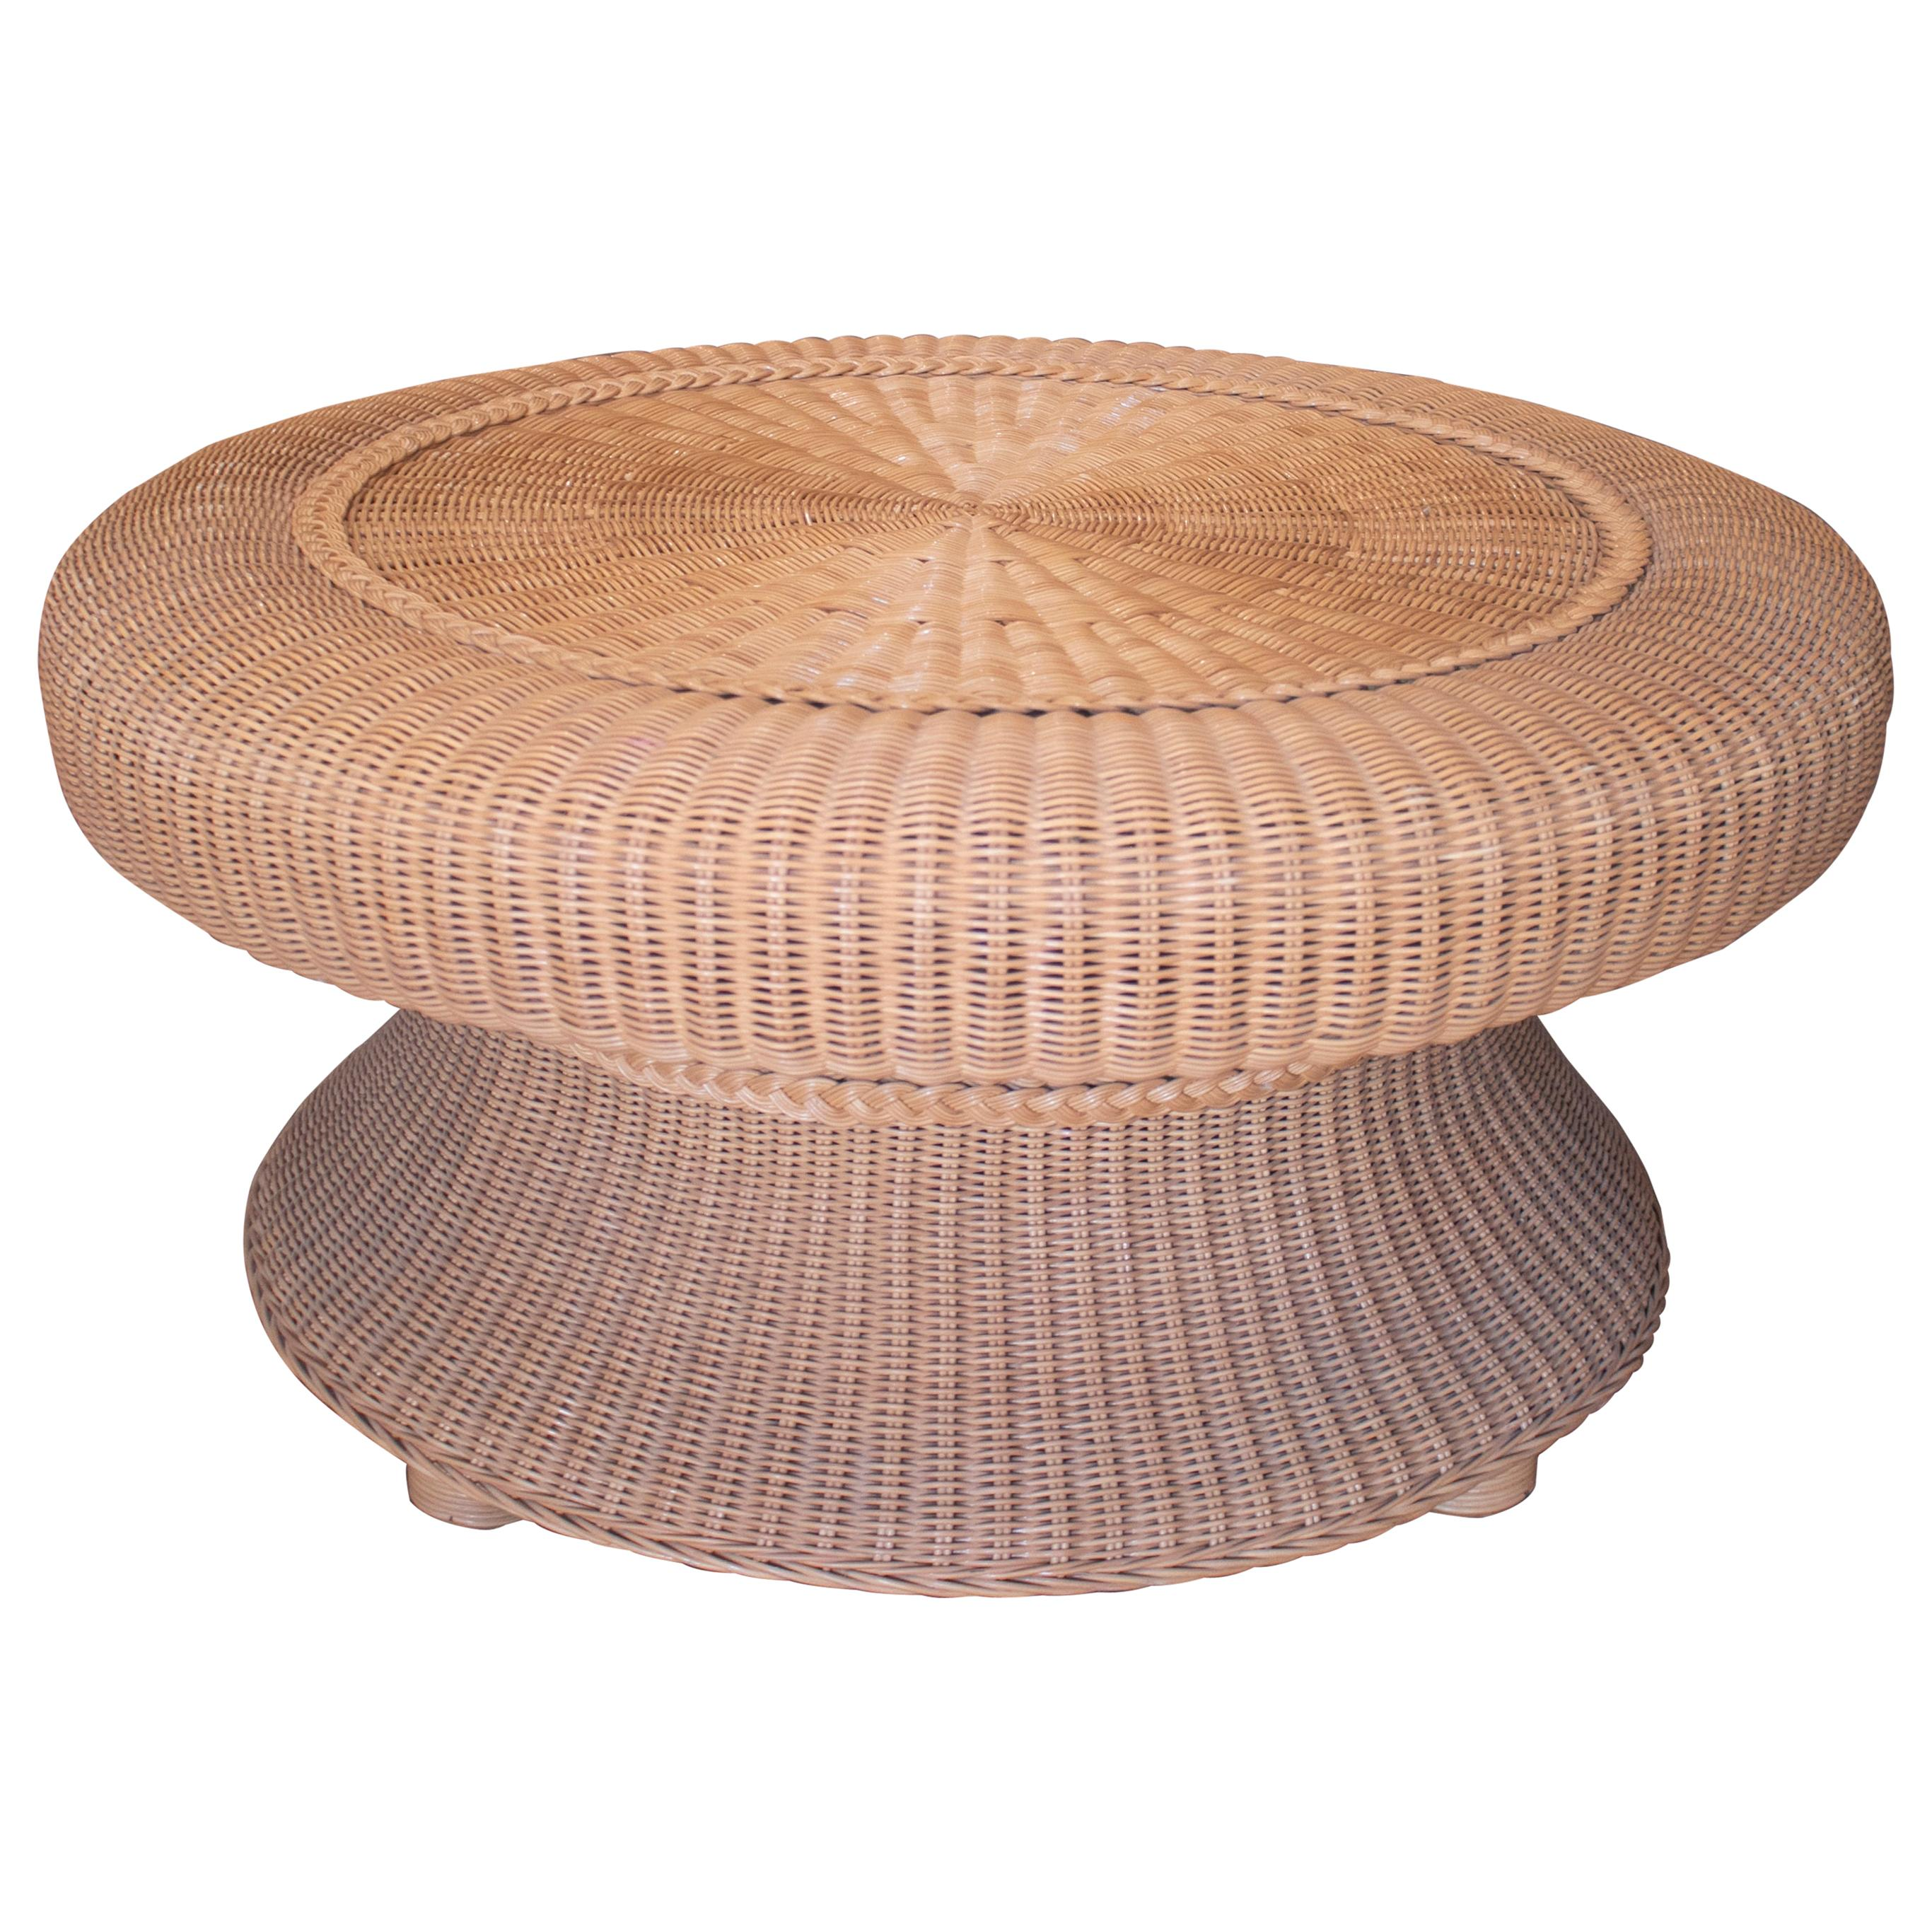 1980s Spanish Round Woven Wicker Coffee Table